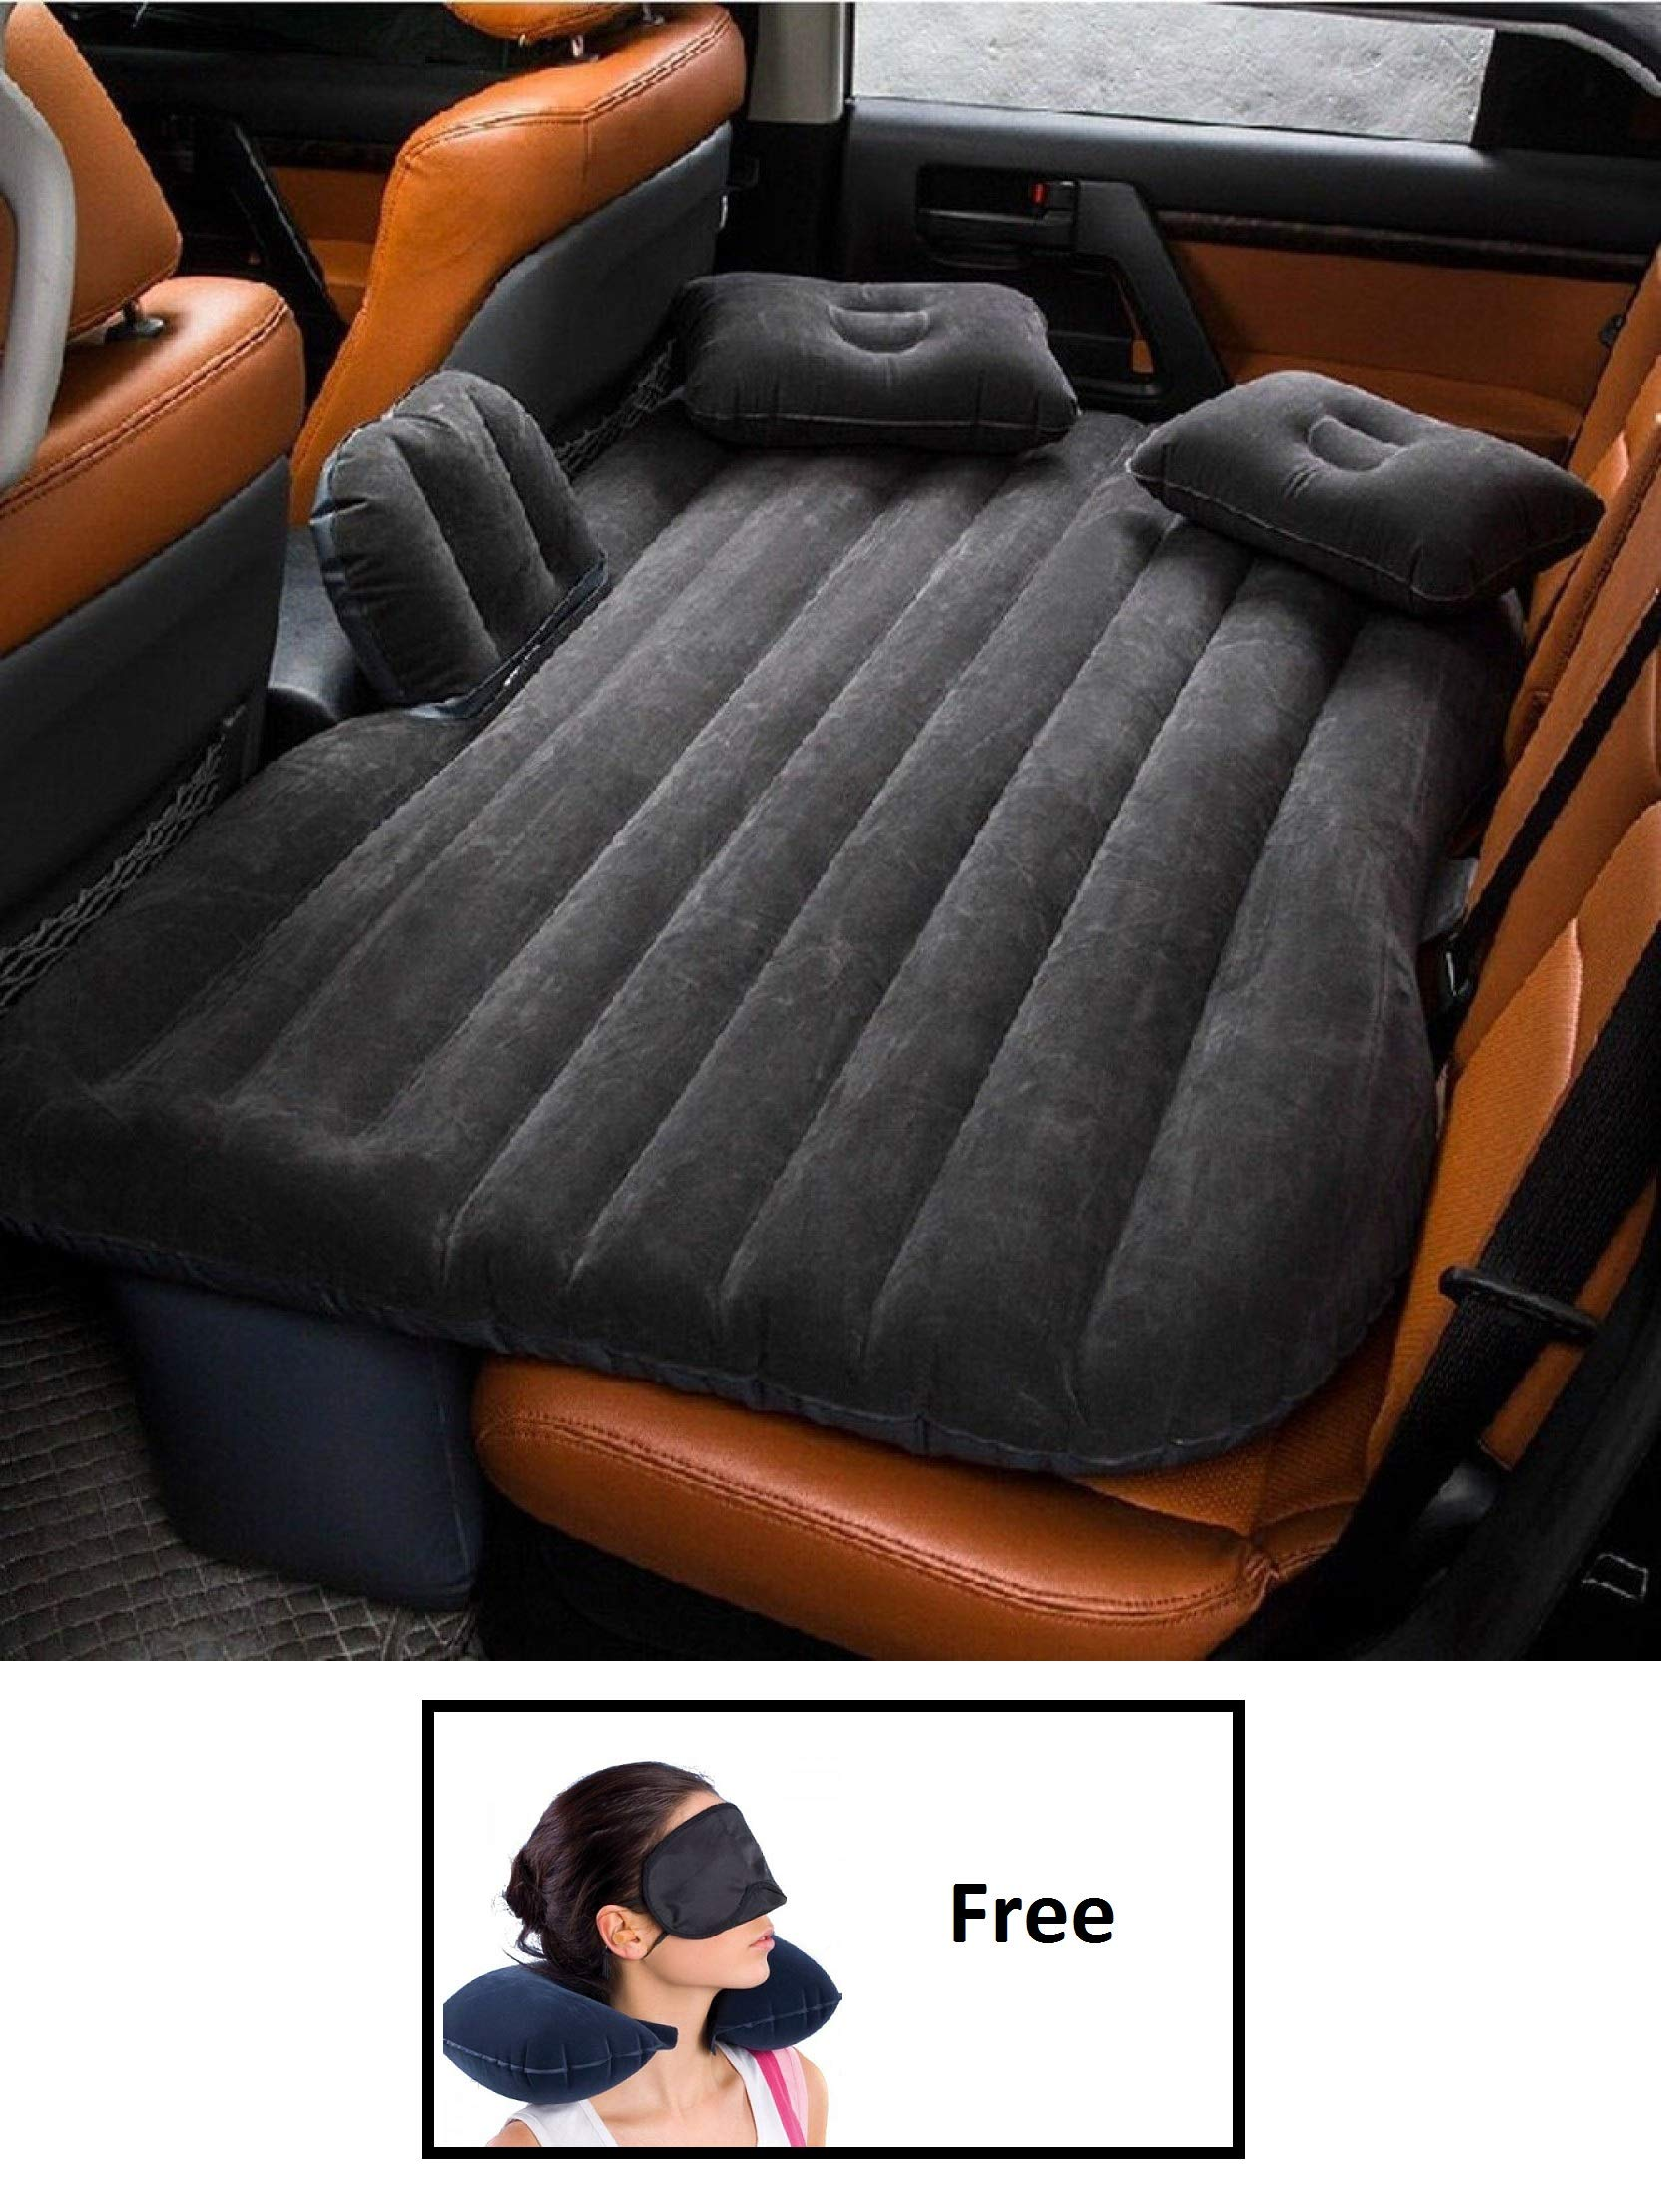 HSR Inflatable Car Bed Mattress with Two Air Pillows, Car Air Pump and Repair Kit (Multi Color) product image